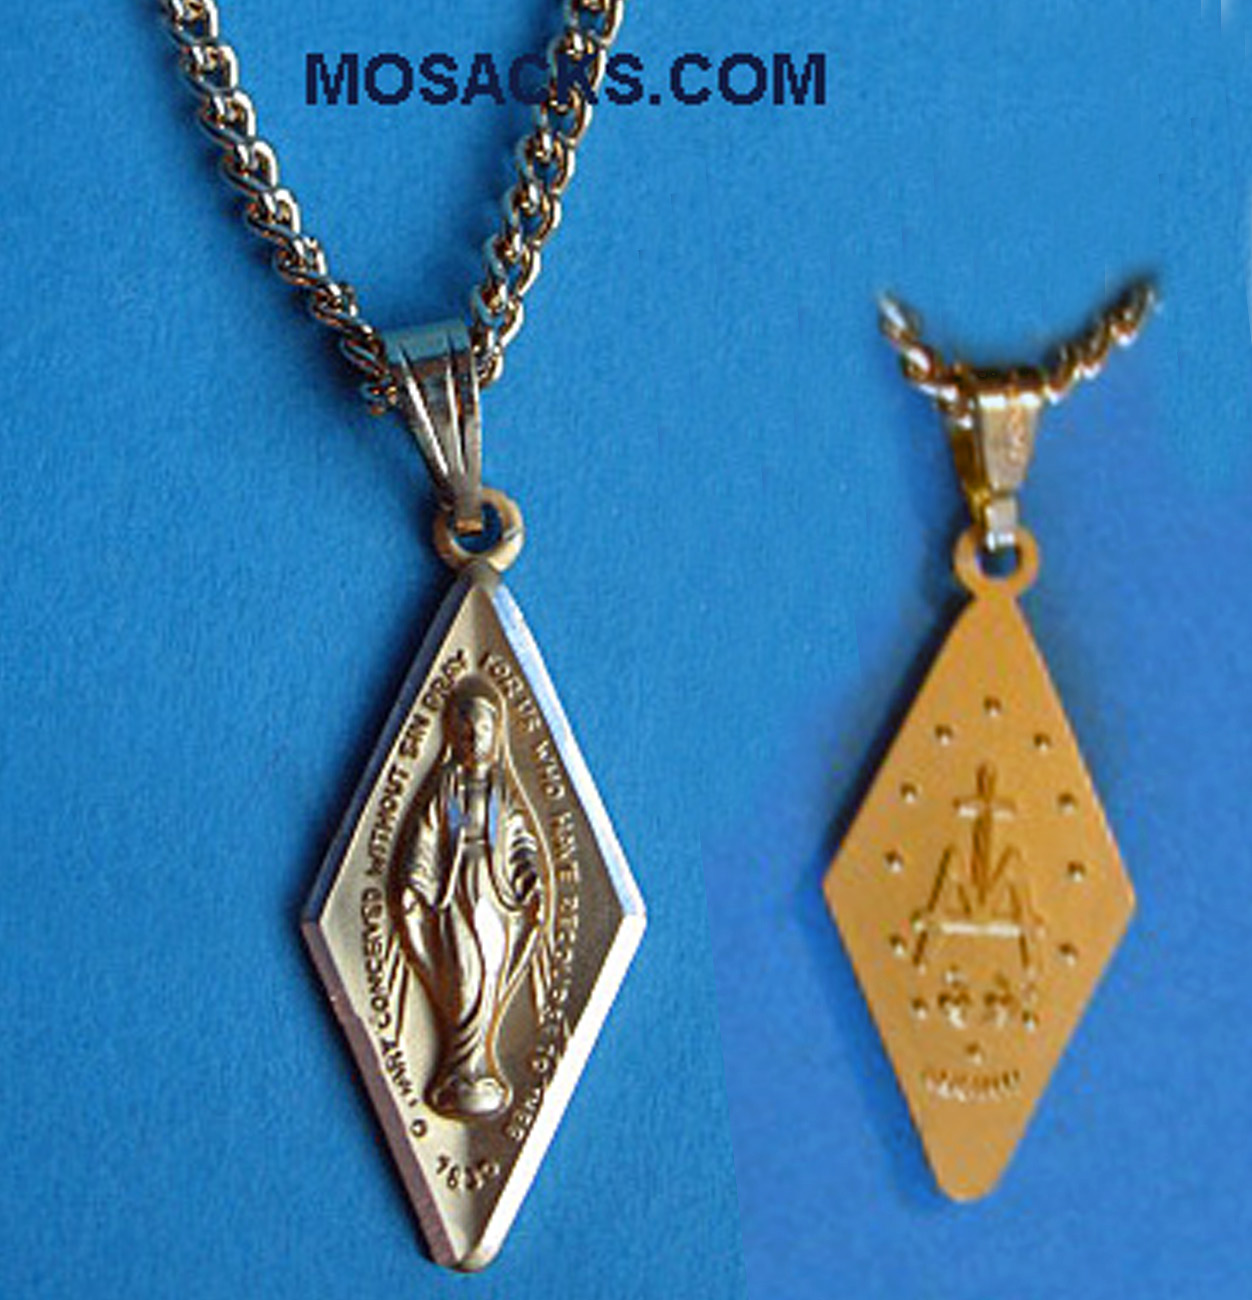 Necklaces Miraculous & Mary